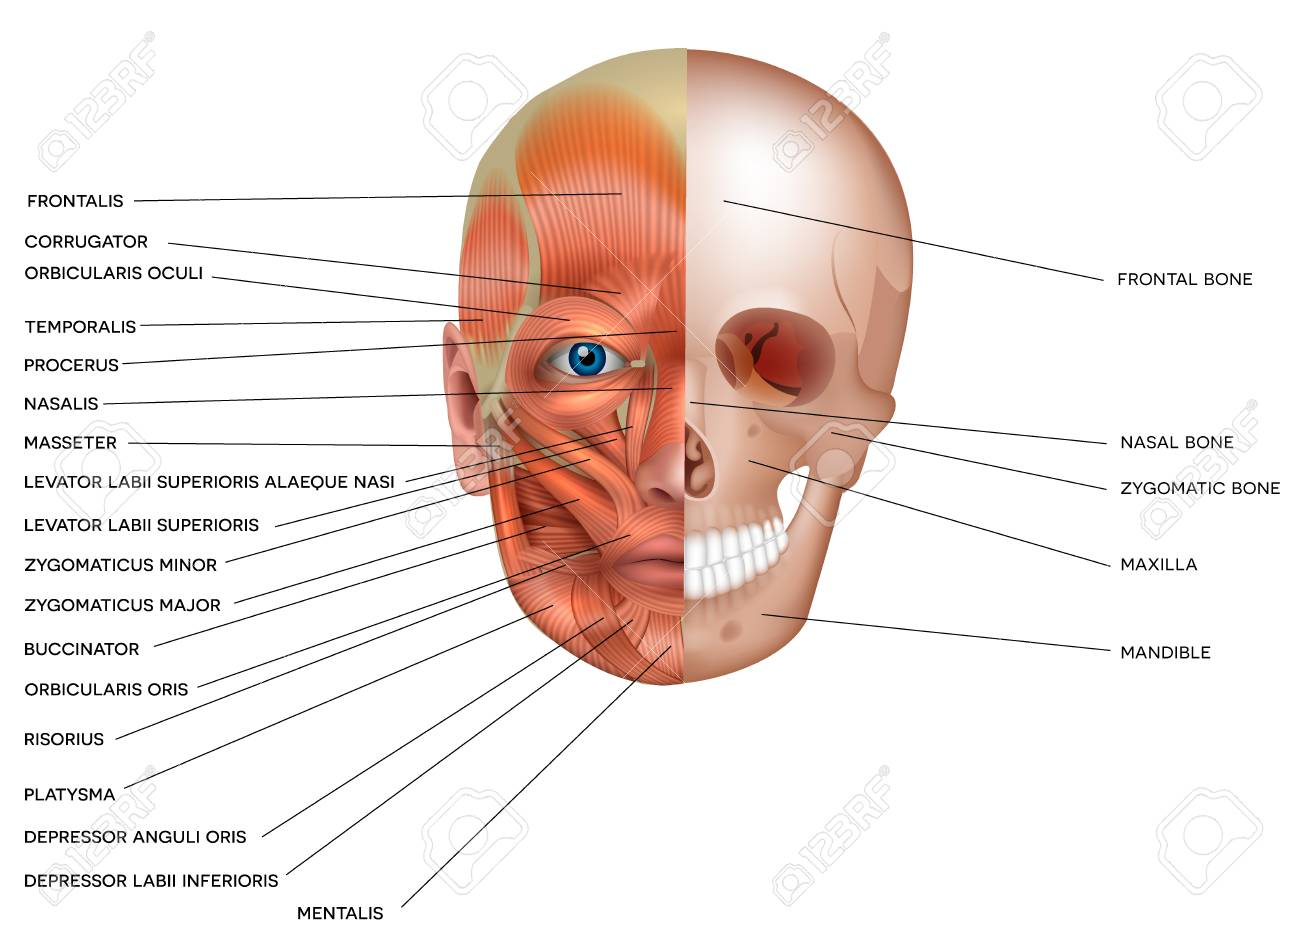 Muscles and bones of the face detailed bright anatomy isolated on a white background. - 93657354